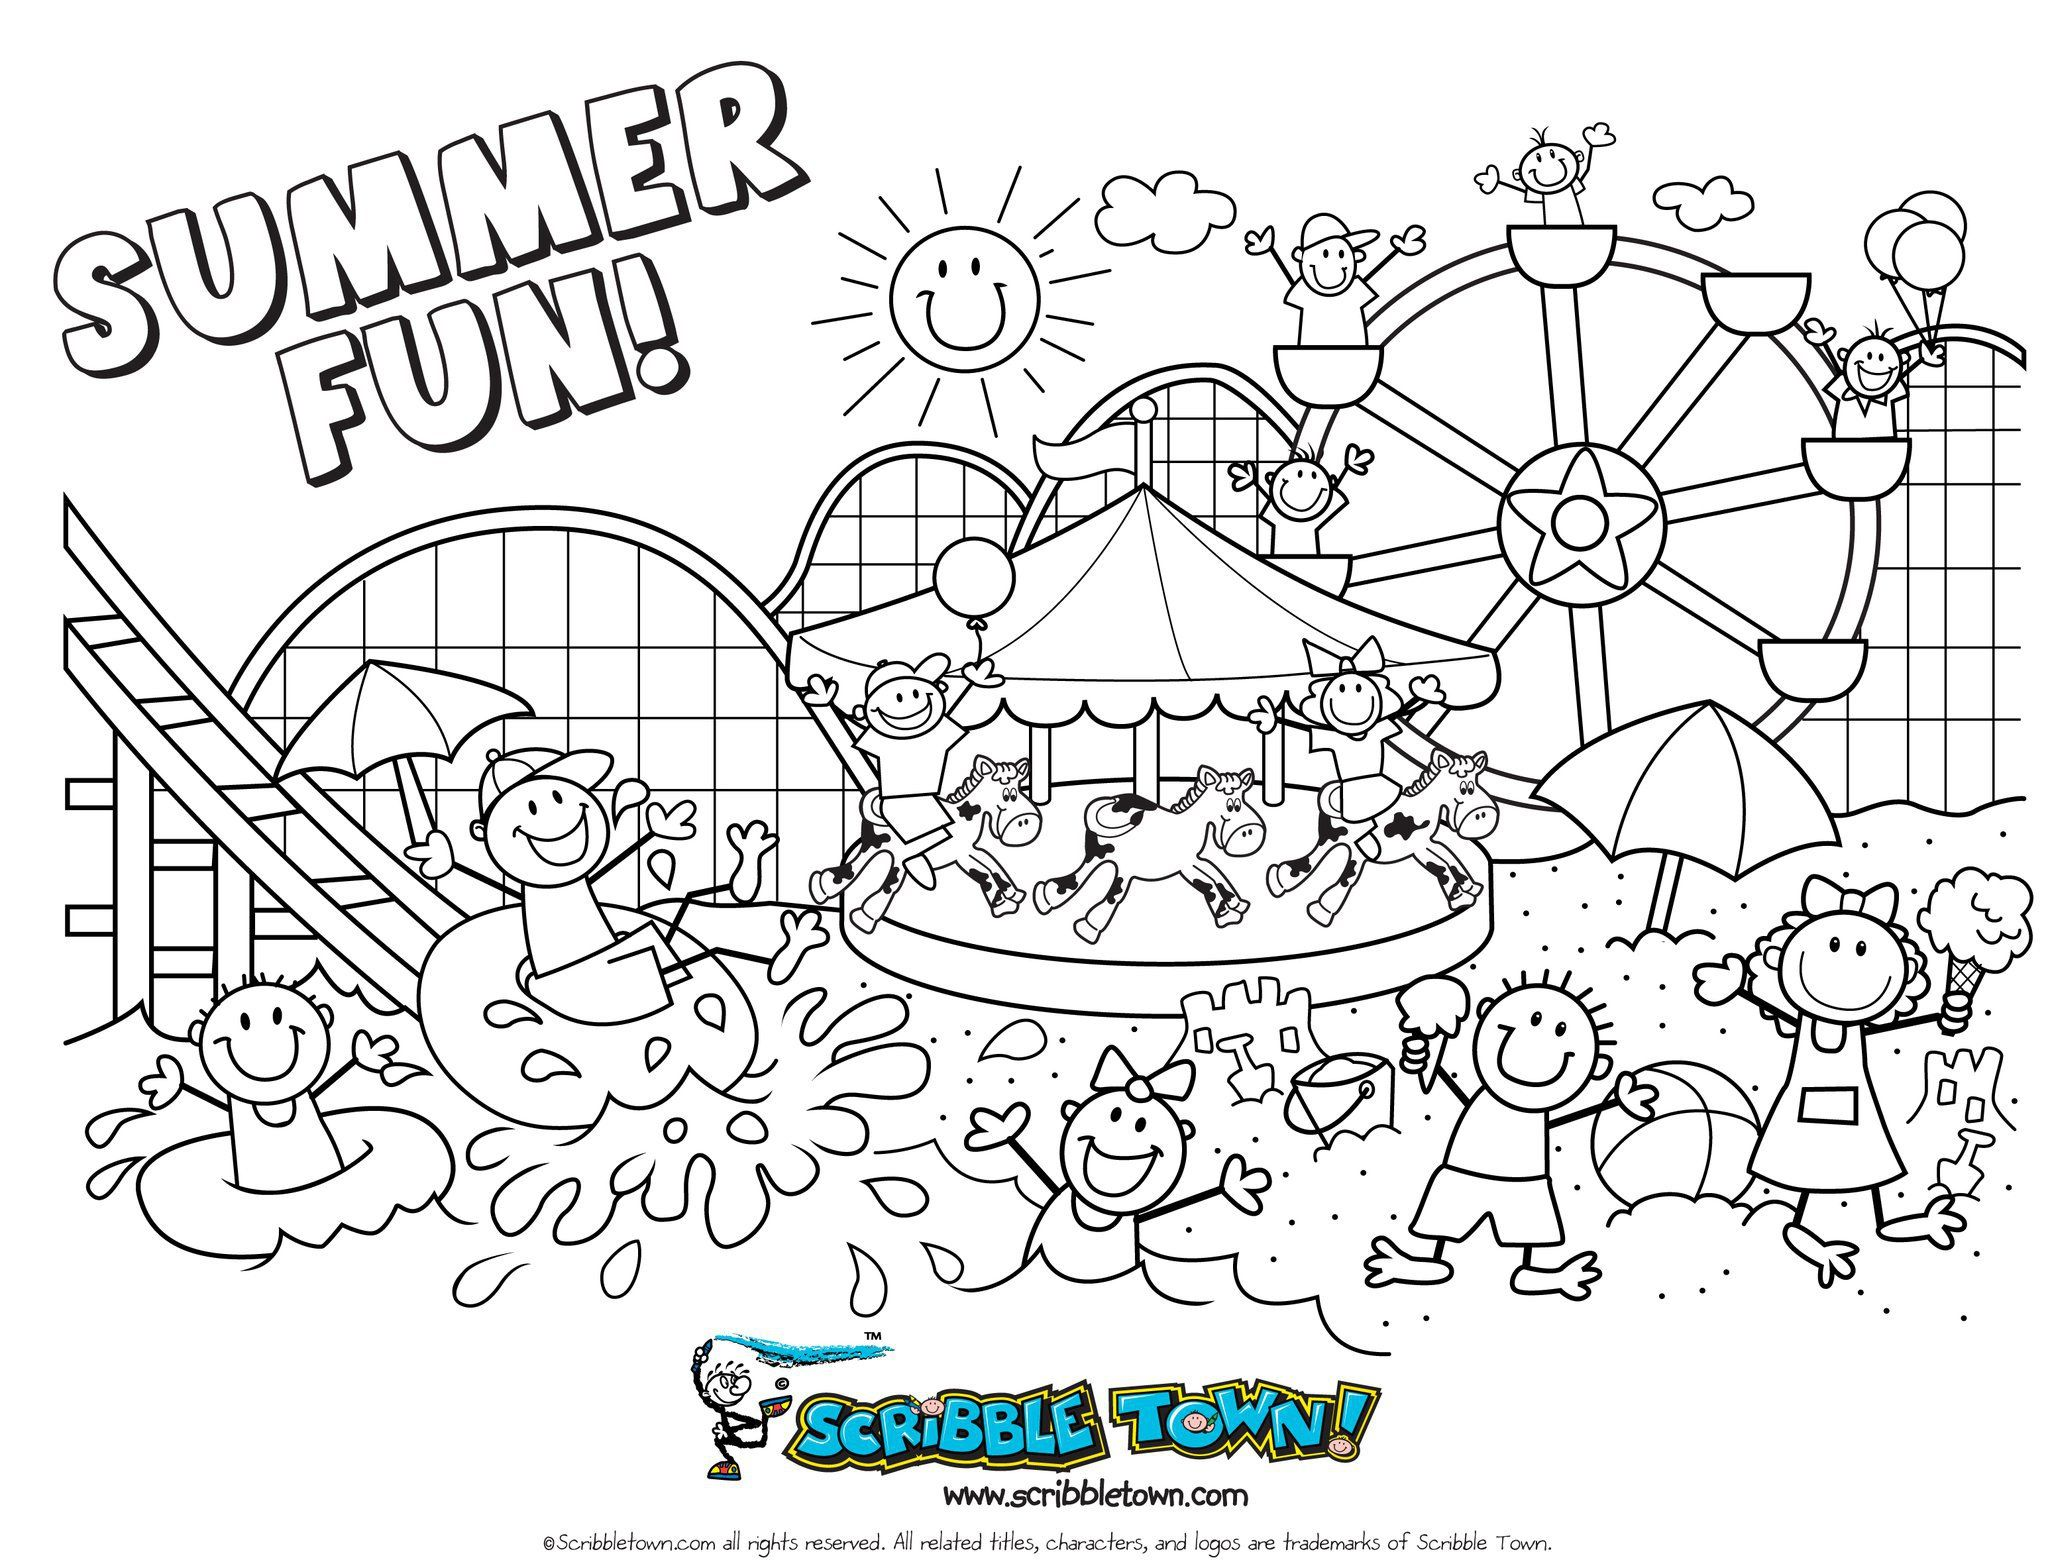 Free Summer Colouring Pages Printable Colouring Sheets Summer Fun Things To Do With Kids Summer Coloring Sheets Free Coloring Pages Free Kids Coloring Pages